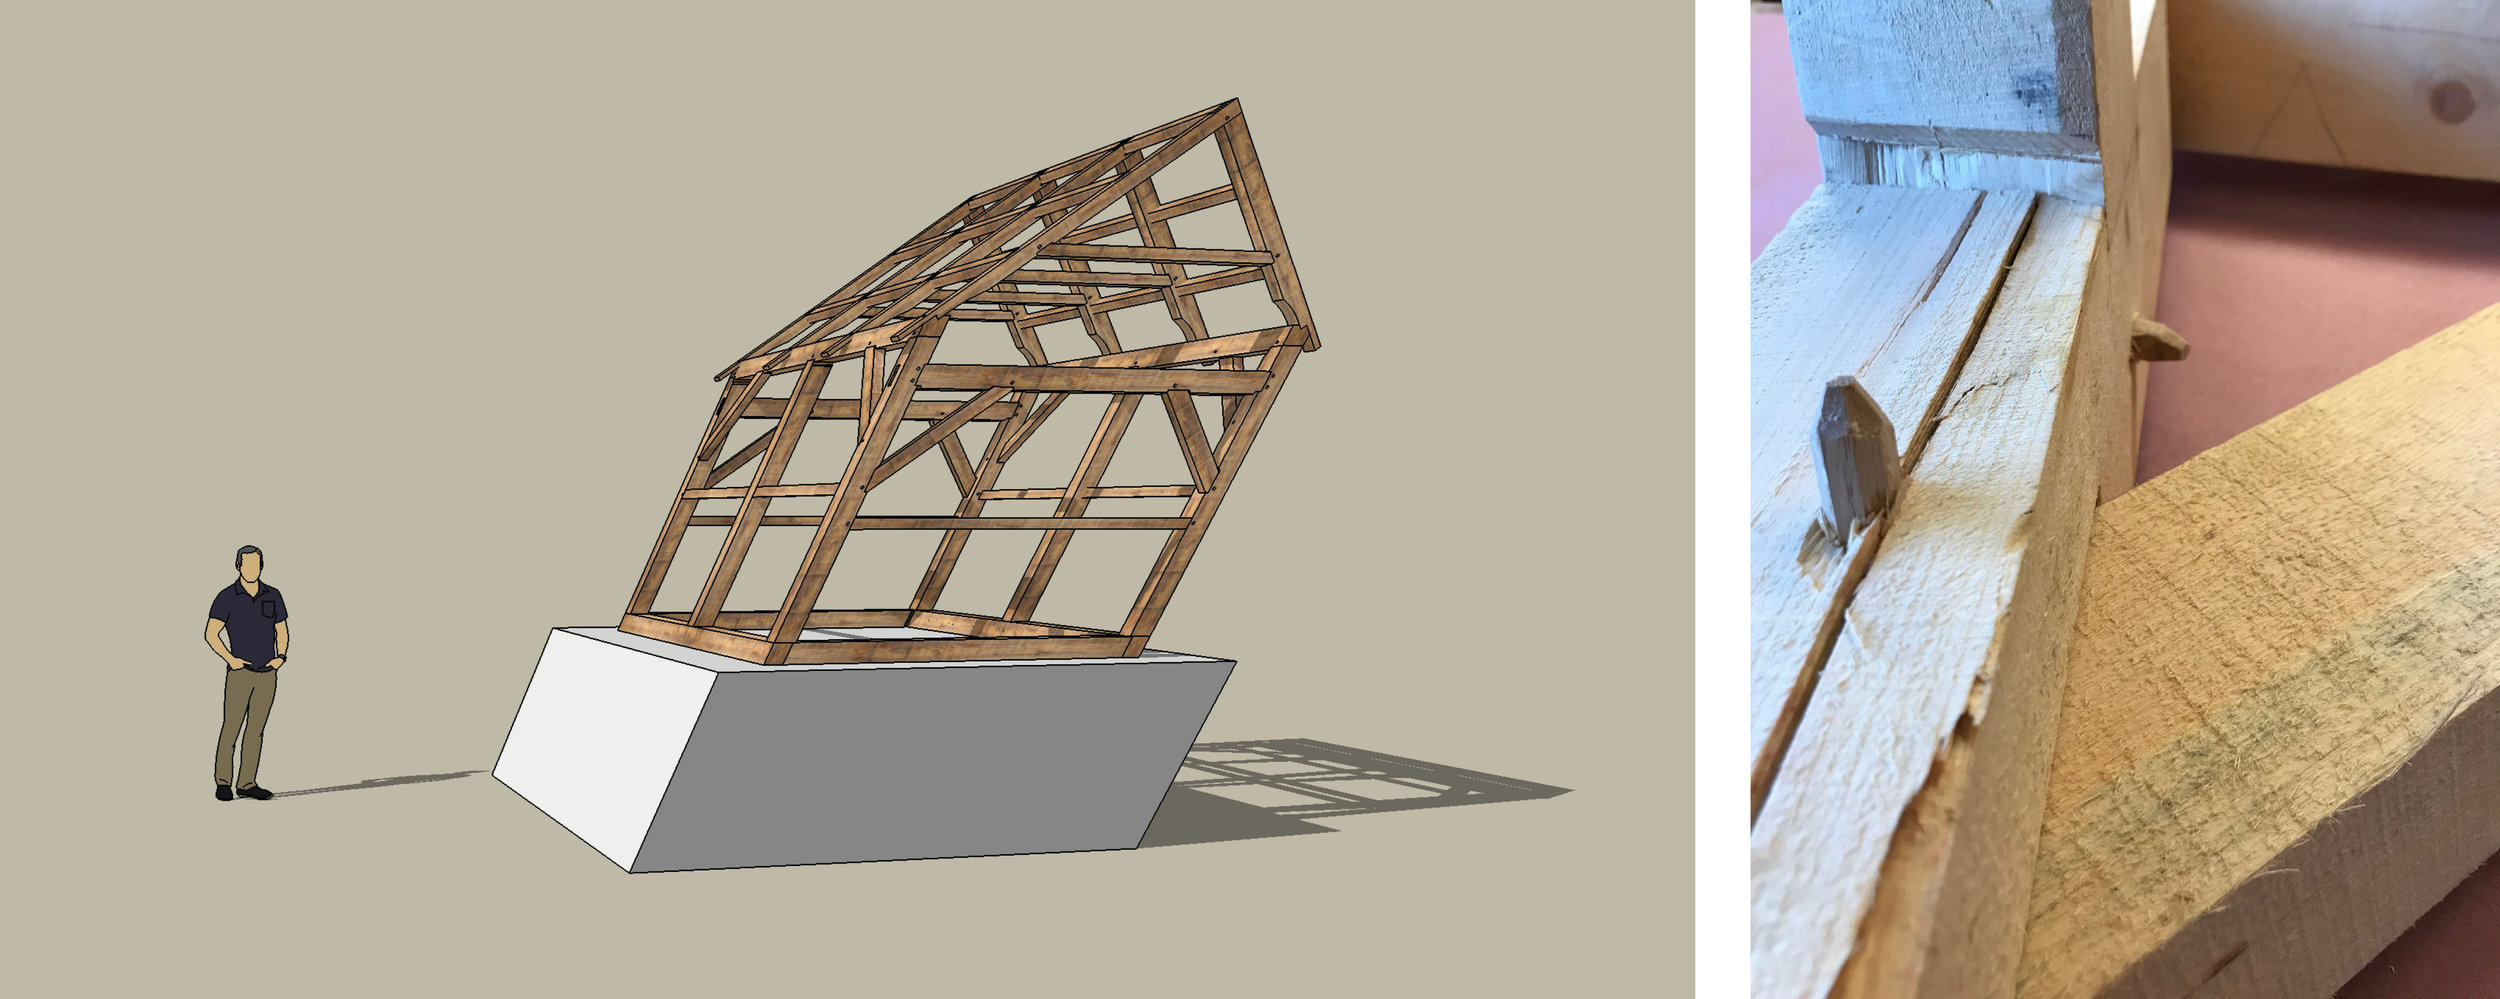 Left to right: A 3-D proposal sketch of  Skew ; timber-framing experiments with compound angles.